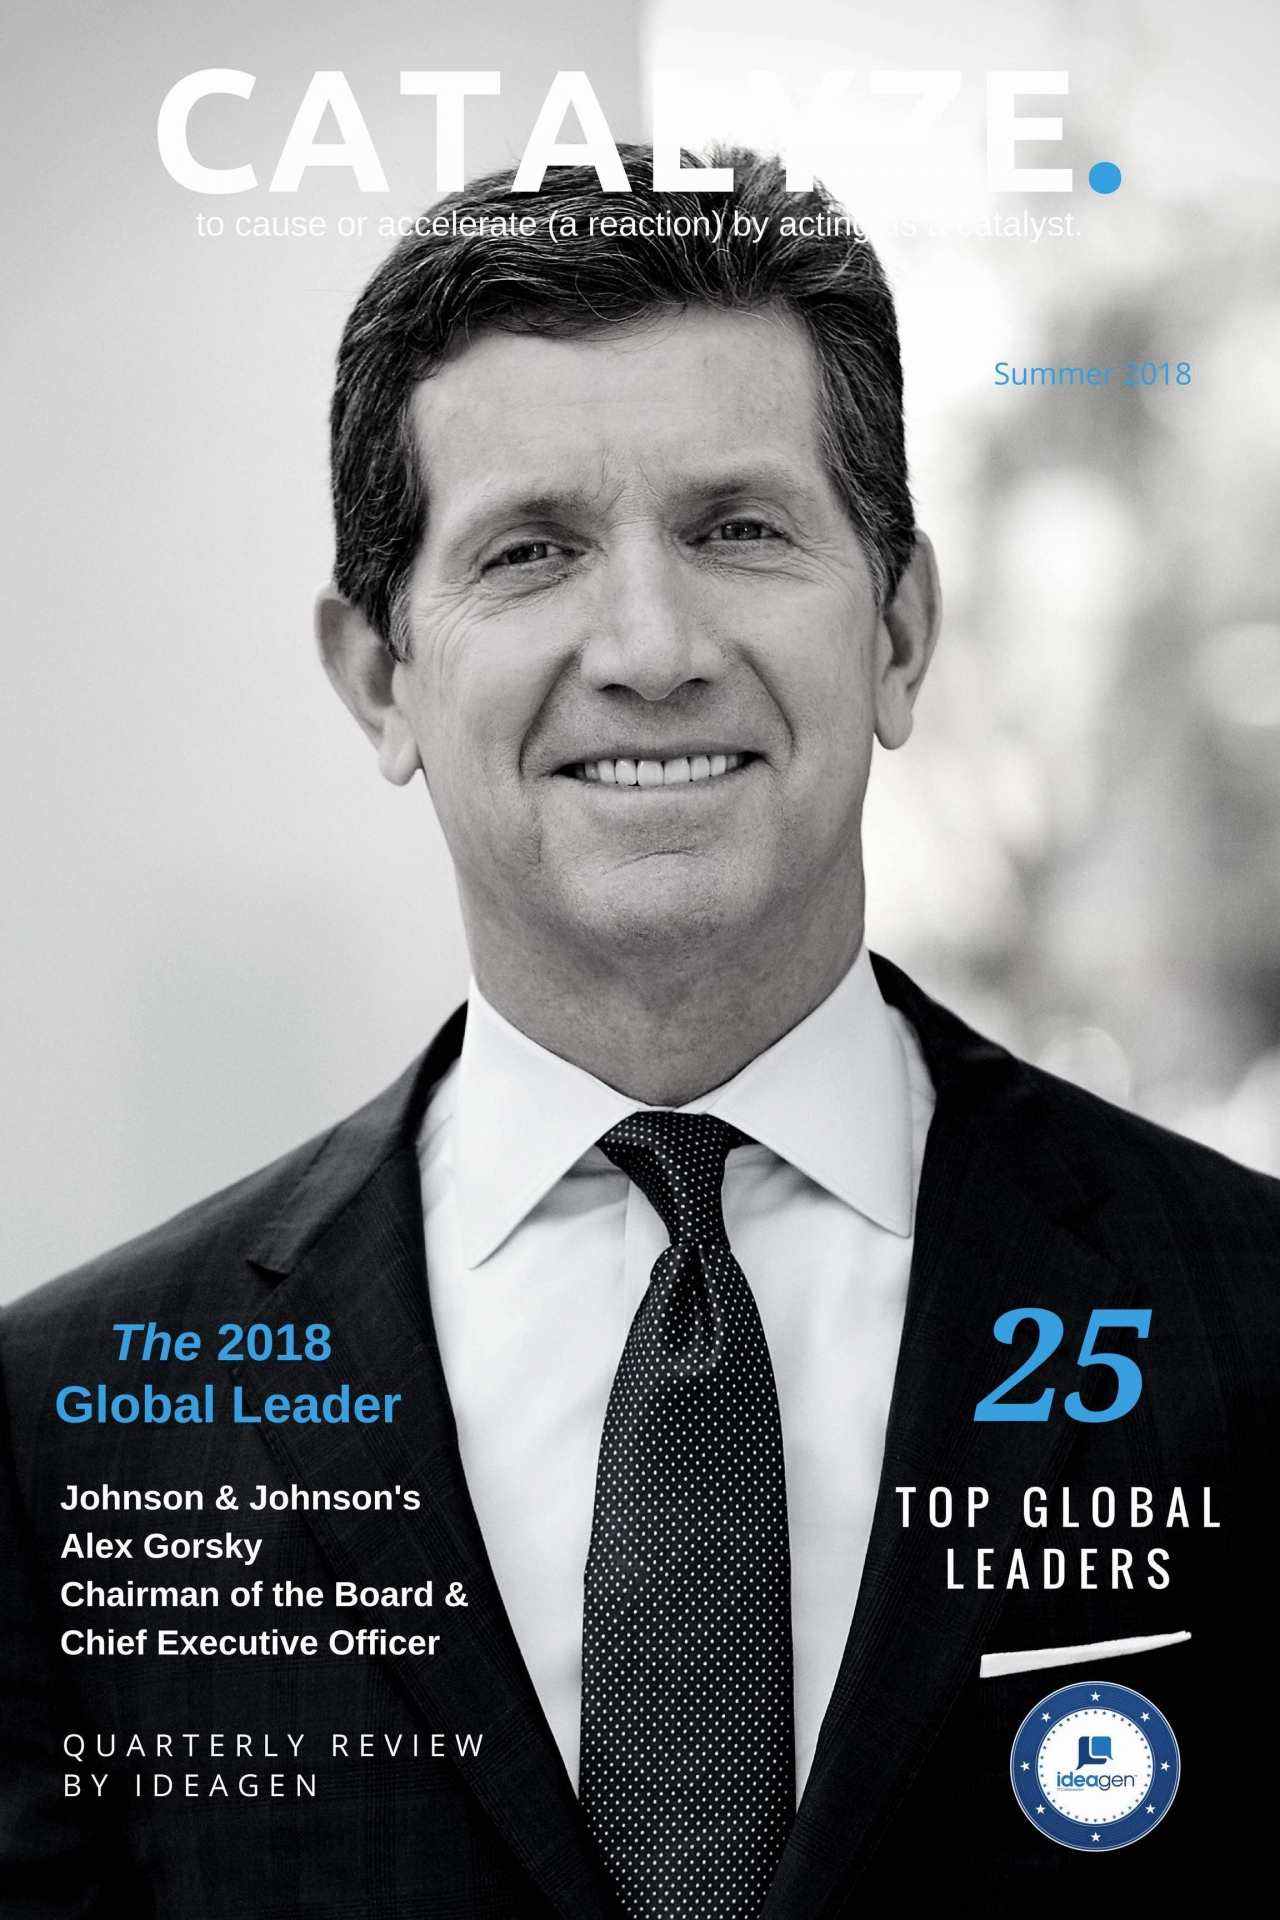 Ideagen Annual Global Leadership 2030 Summit 2018